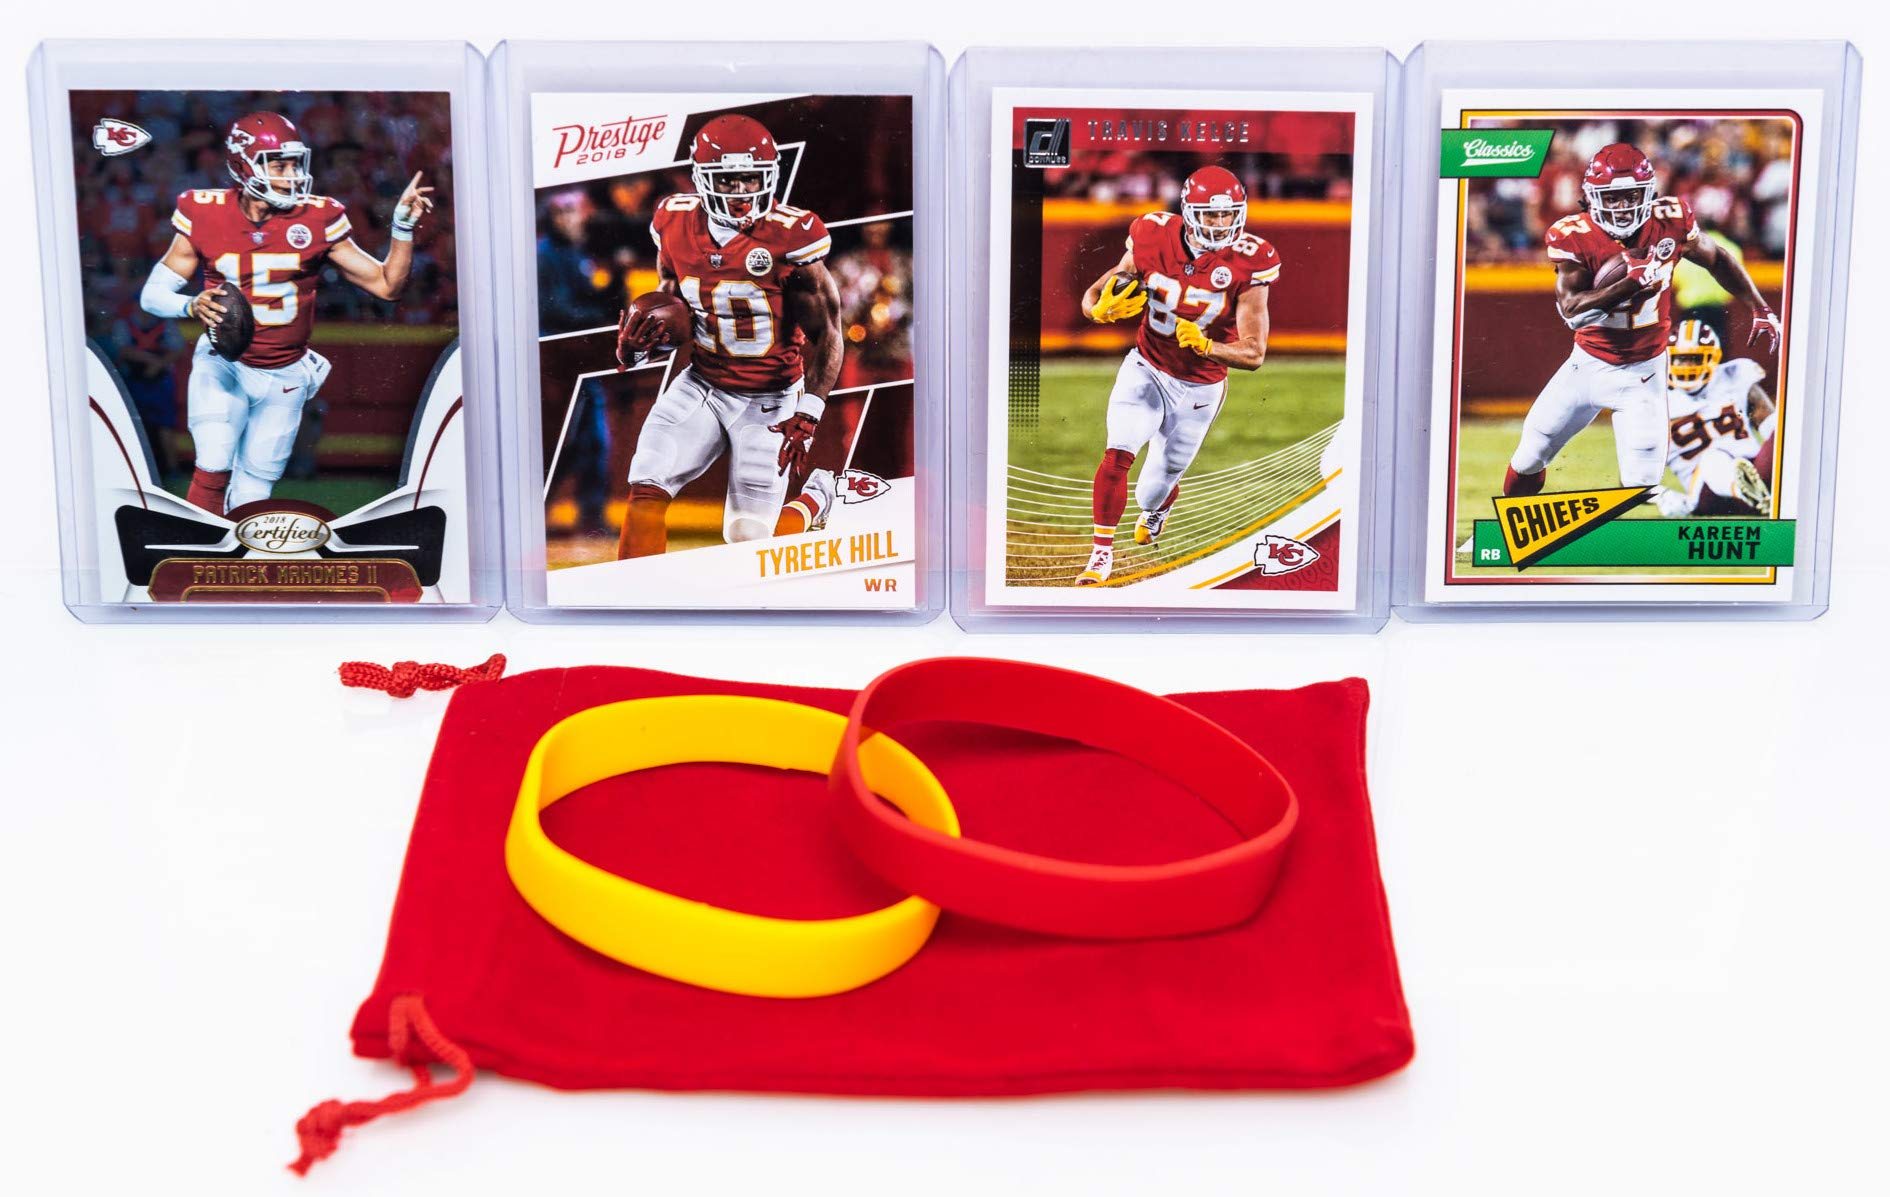 Kansas City Chiefs Cards: Patrick Mahomes, Tyreek Hill, Kareem Hunt, Travis Kelce ASSORTED Football Trading Card and Wristbands Bundle